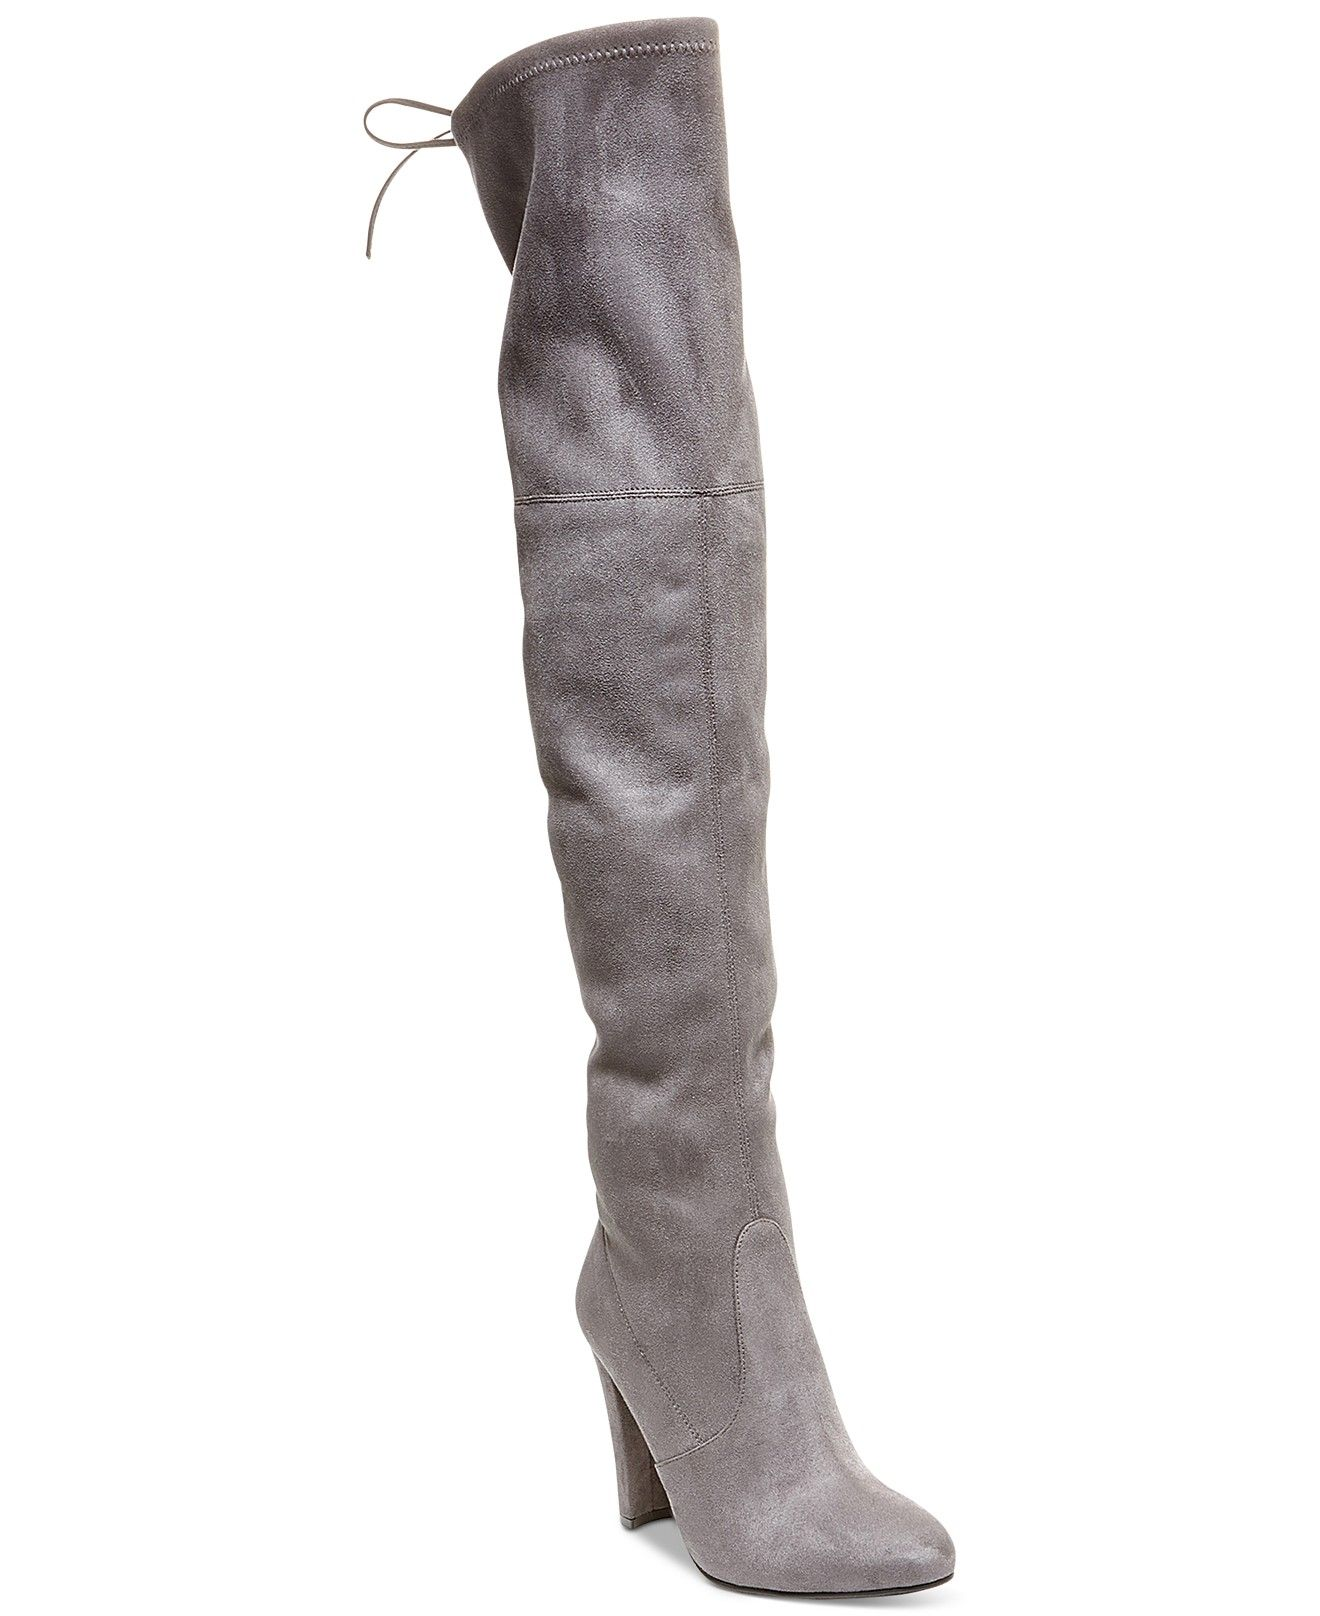 a5cc6a153dc Steve Madden Women's Gorgeous Over-The-Knee Boots - Boots - Shoes ...